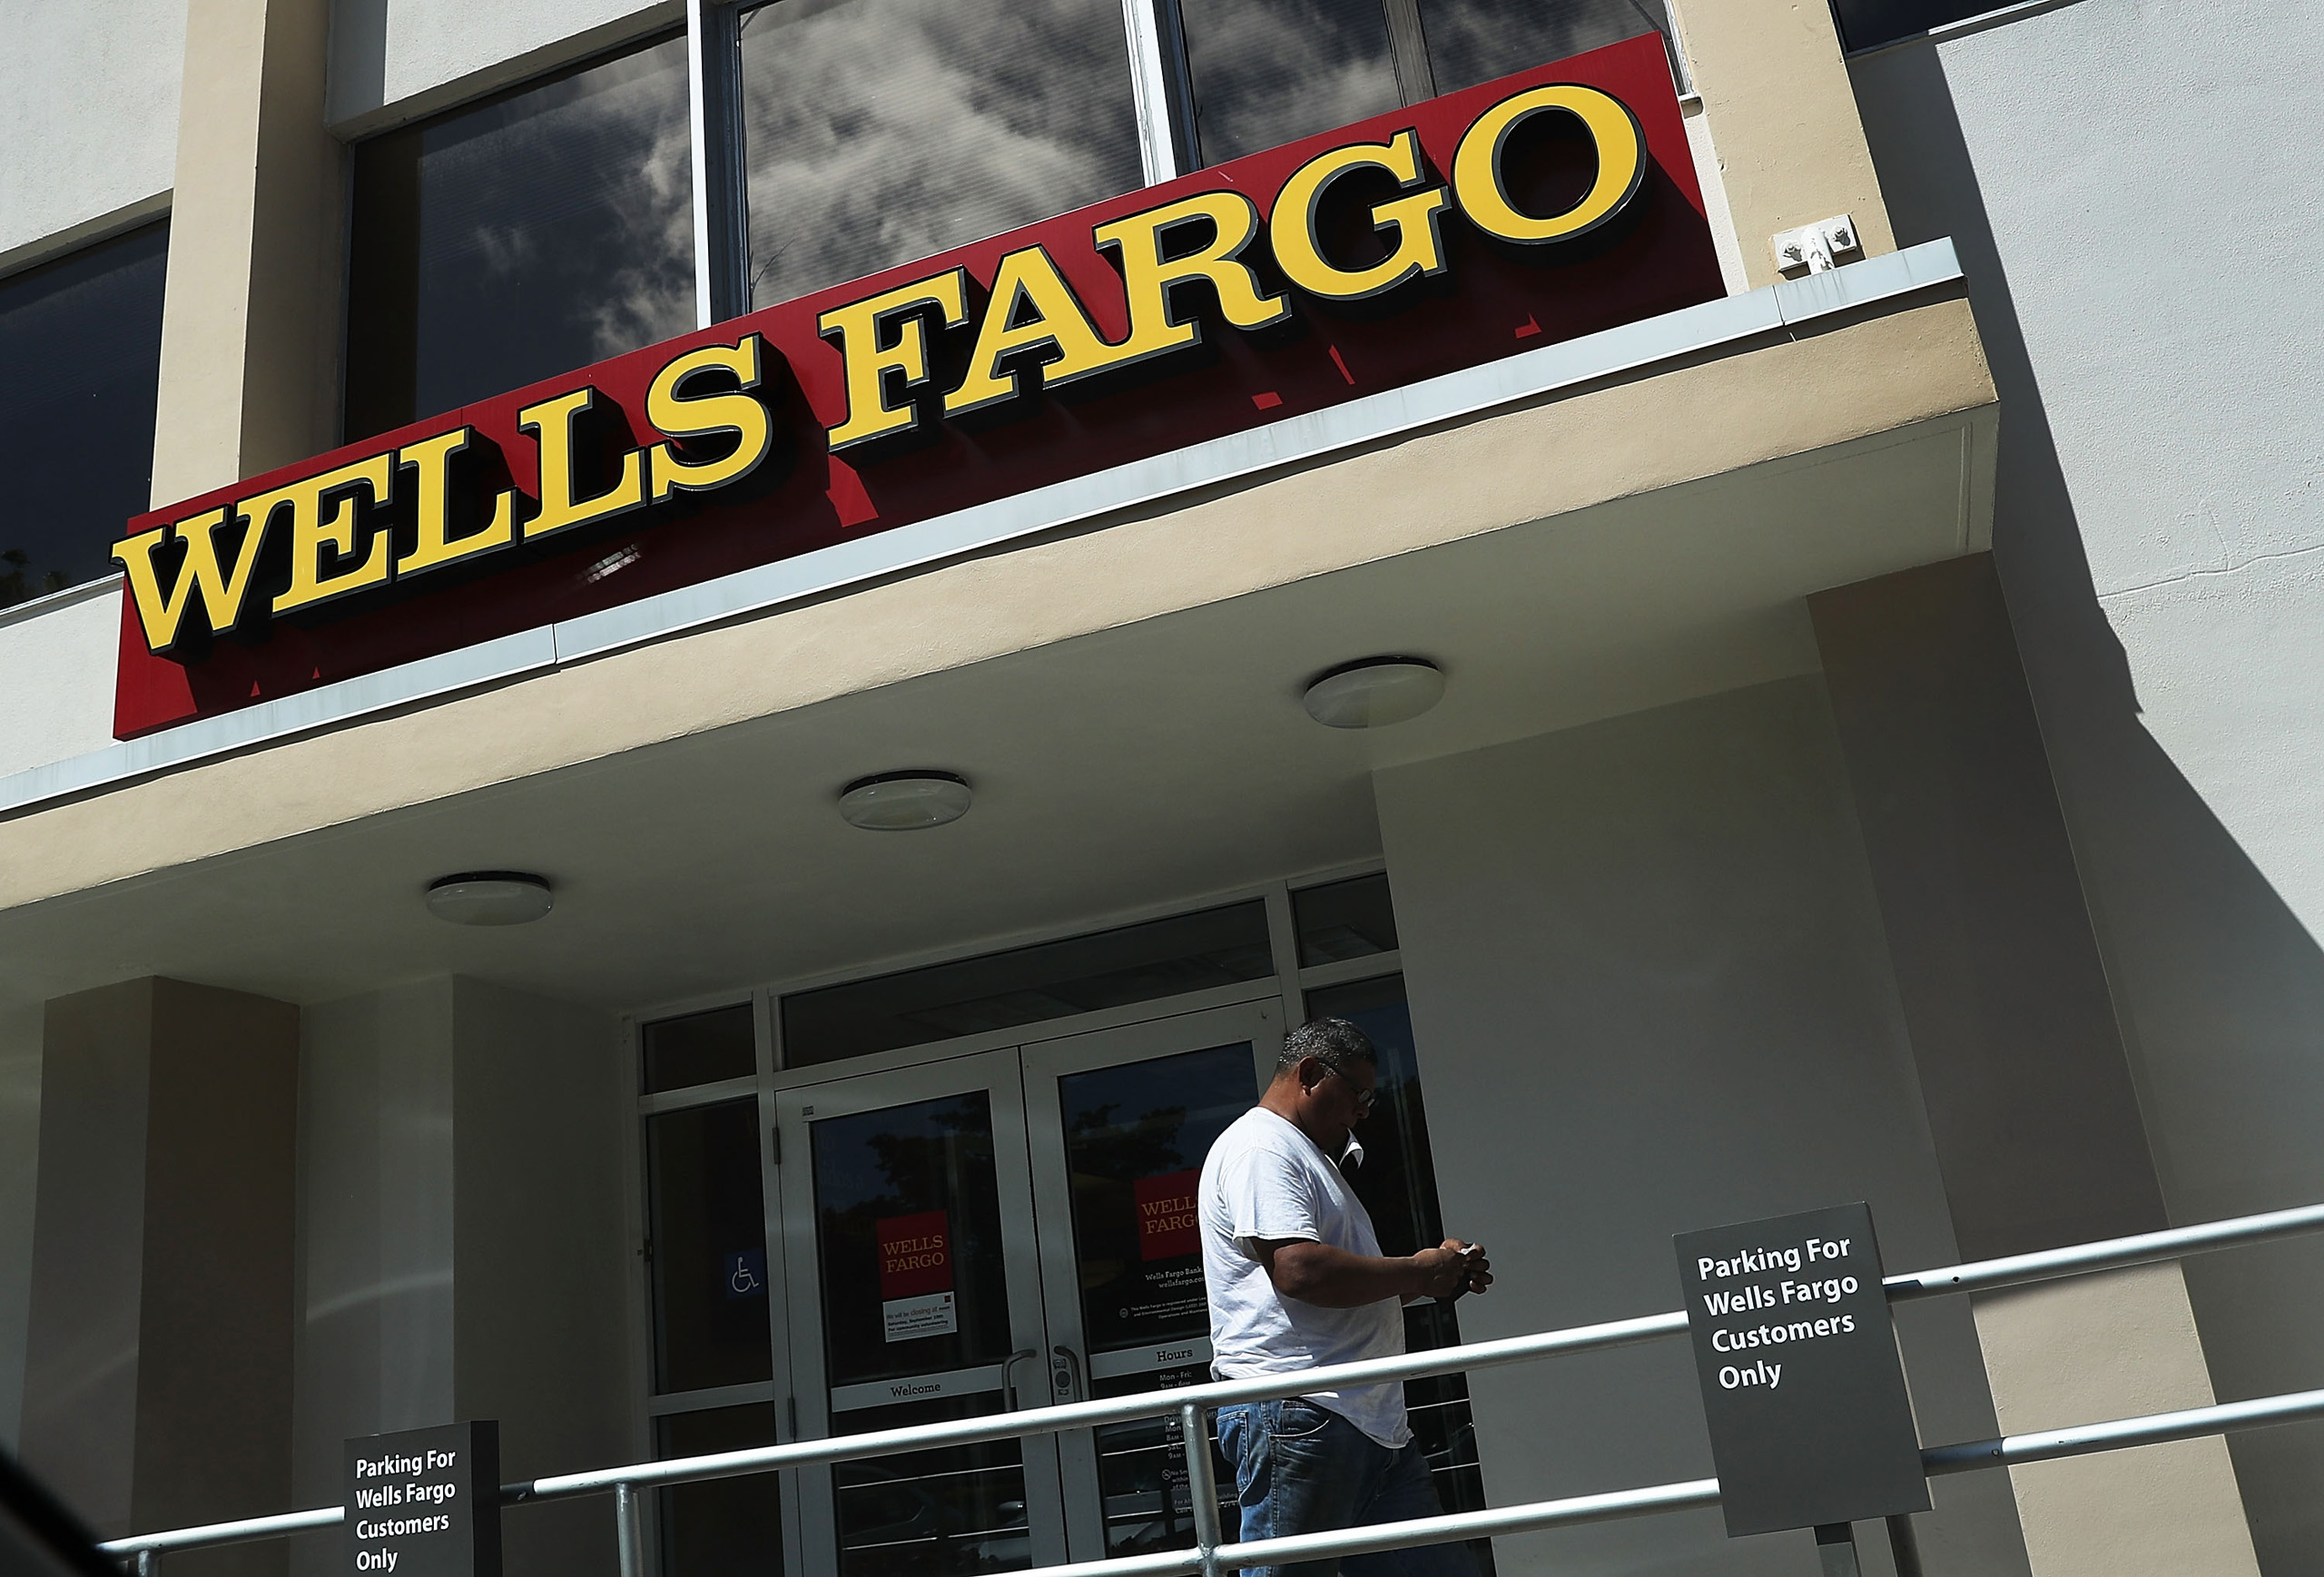 A Wells Fargo sign is seen on the exterior of one of their bank branches in Miami on September 9, 2016.